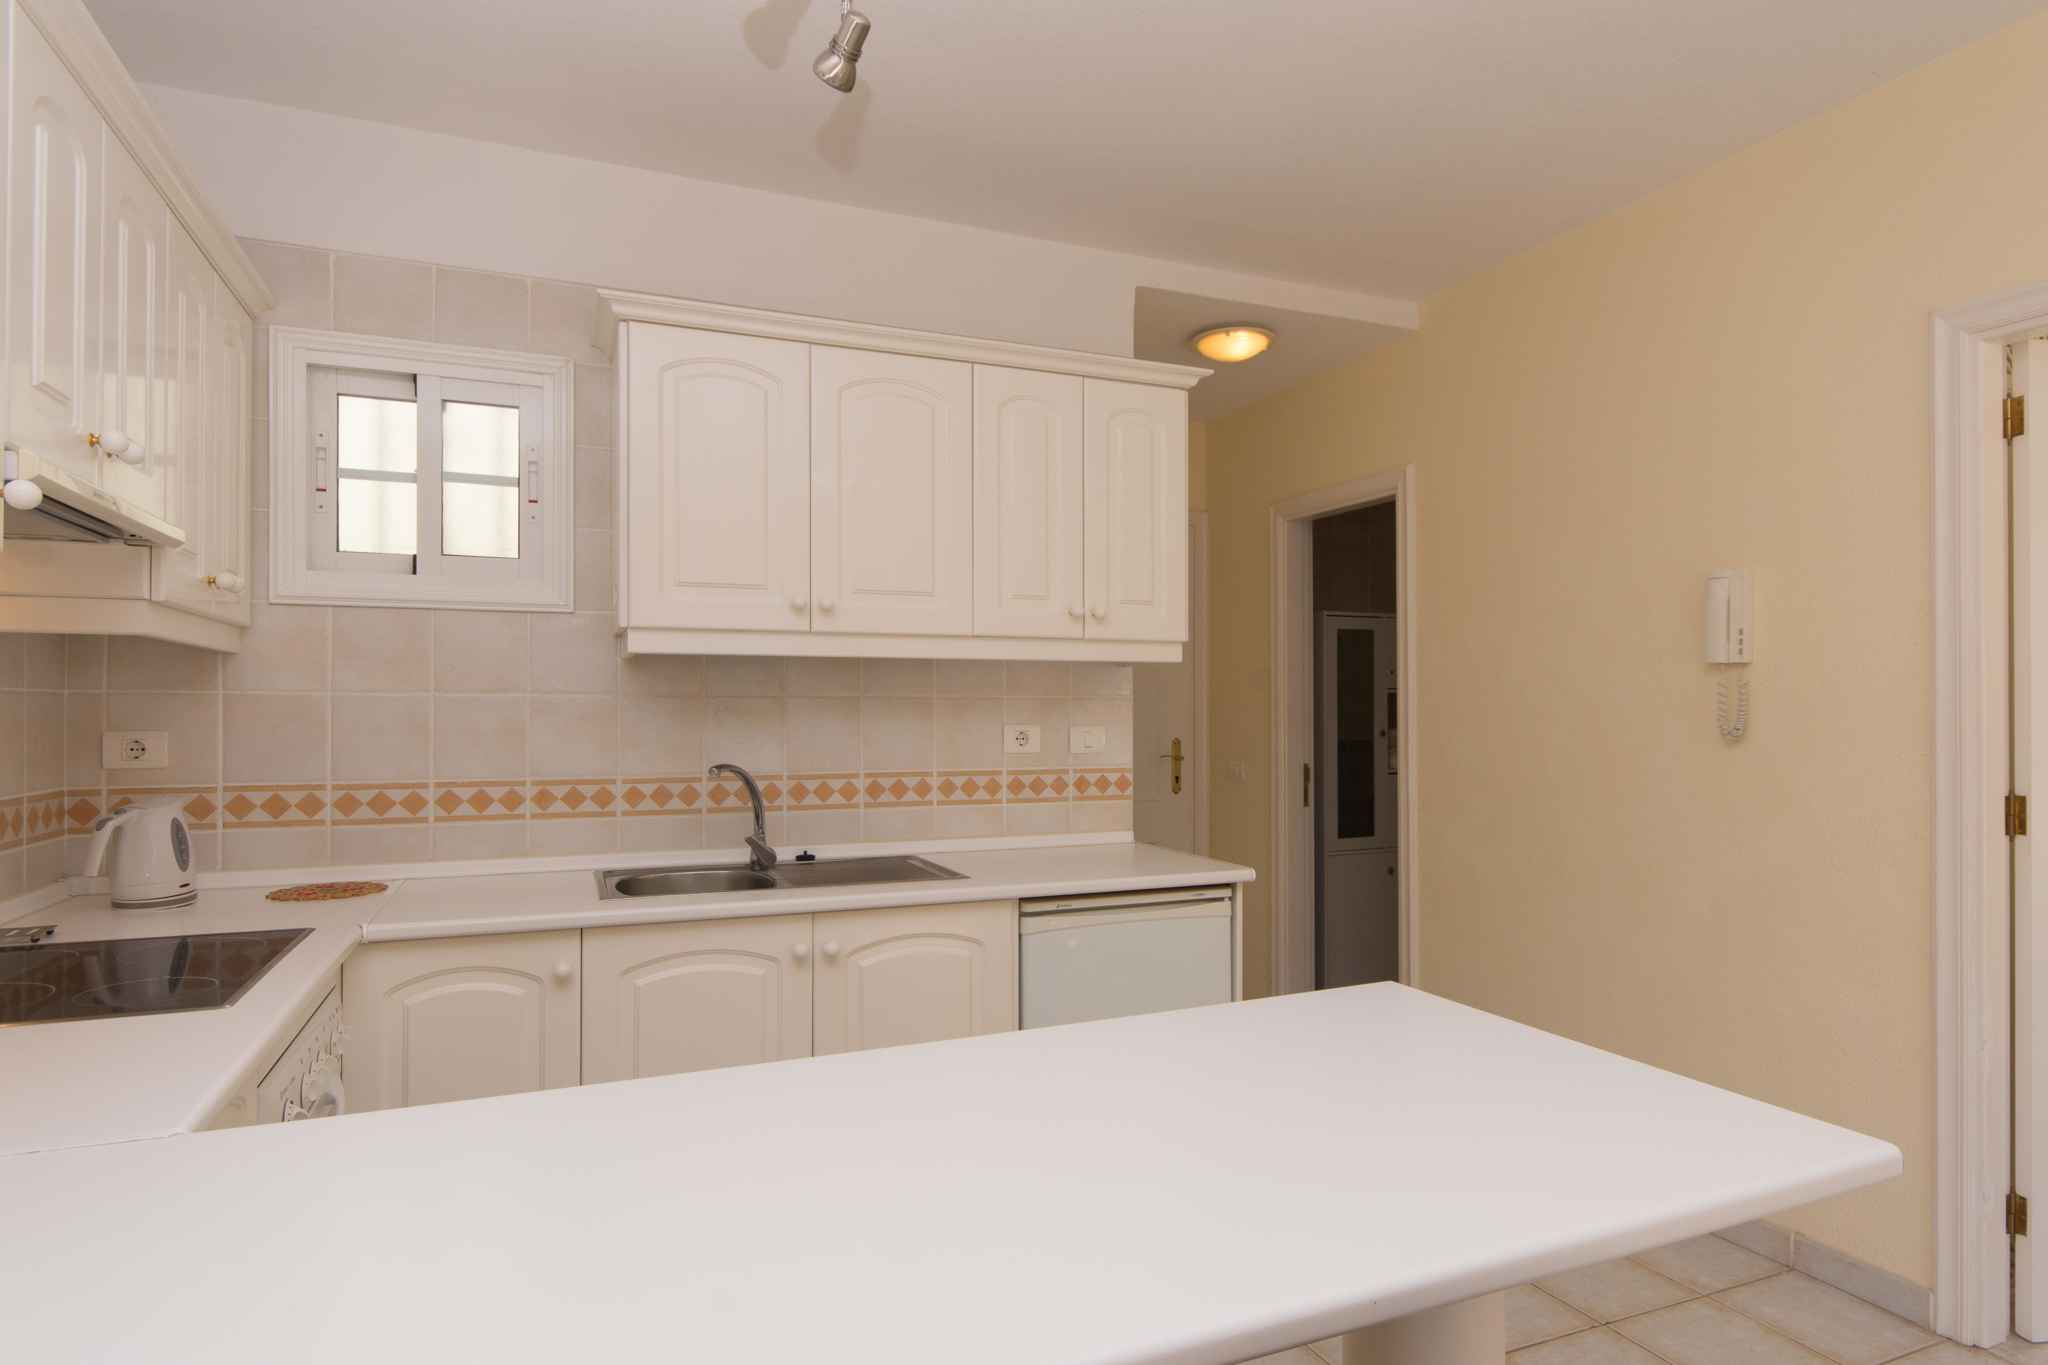 Holiday apartment mit Pool in Ferienanlage (2382979), Los Cristianos, Tenerife, Canary Islands, Spain, picture 13